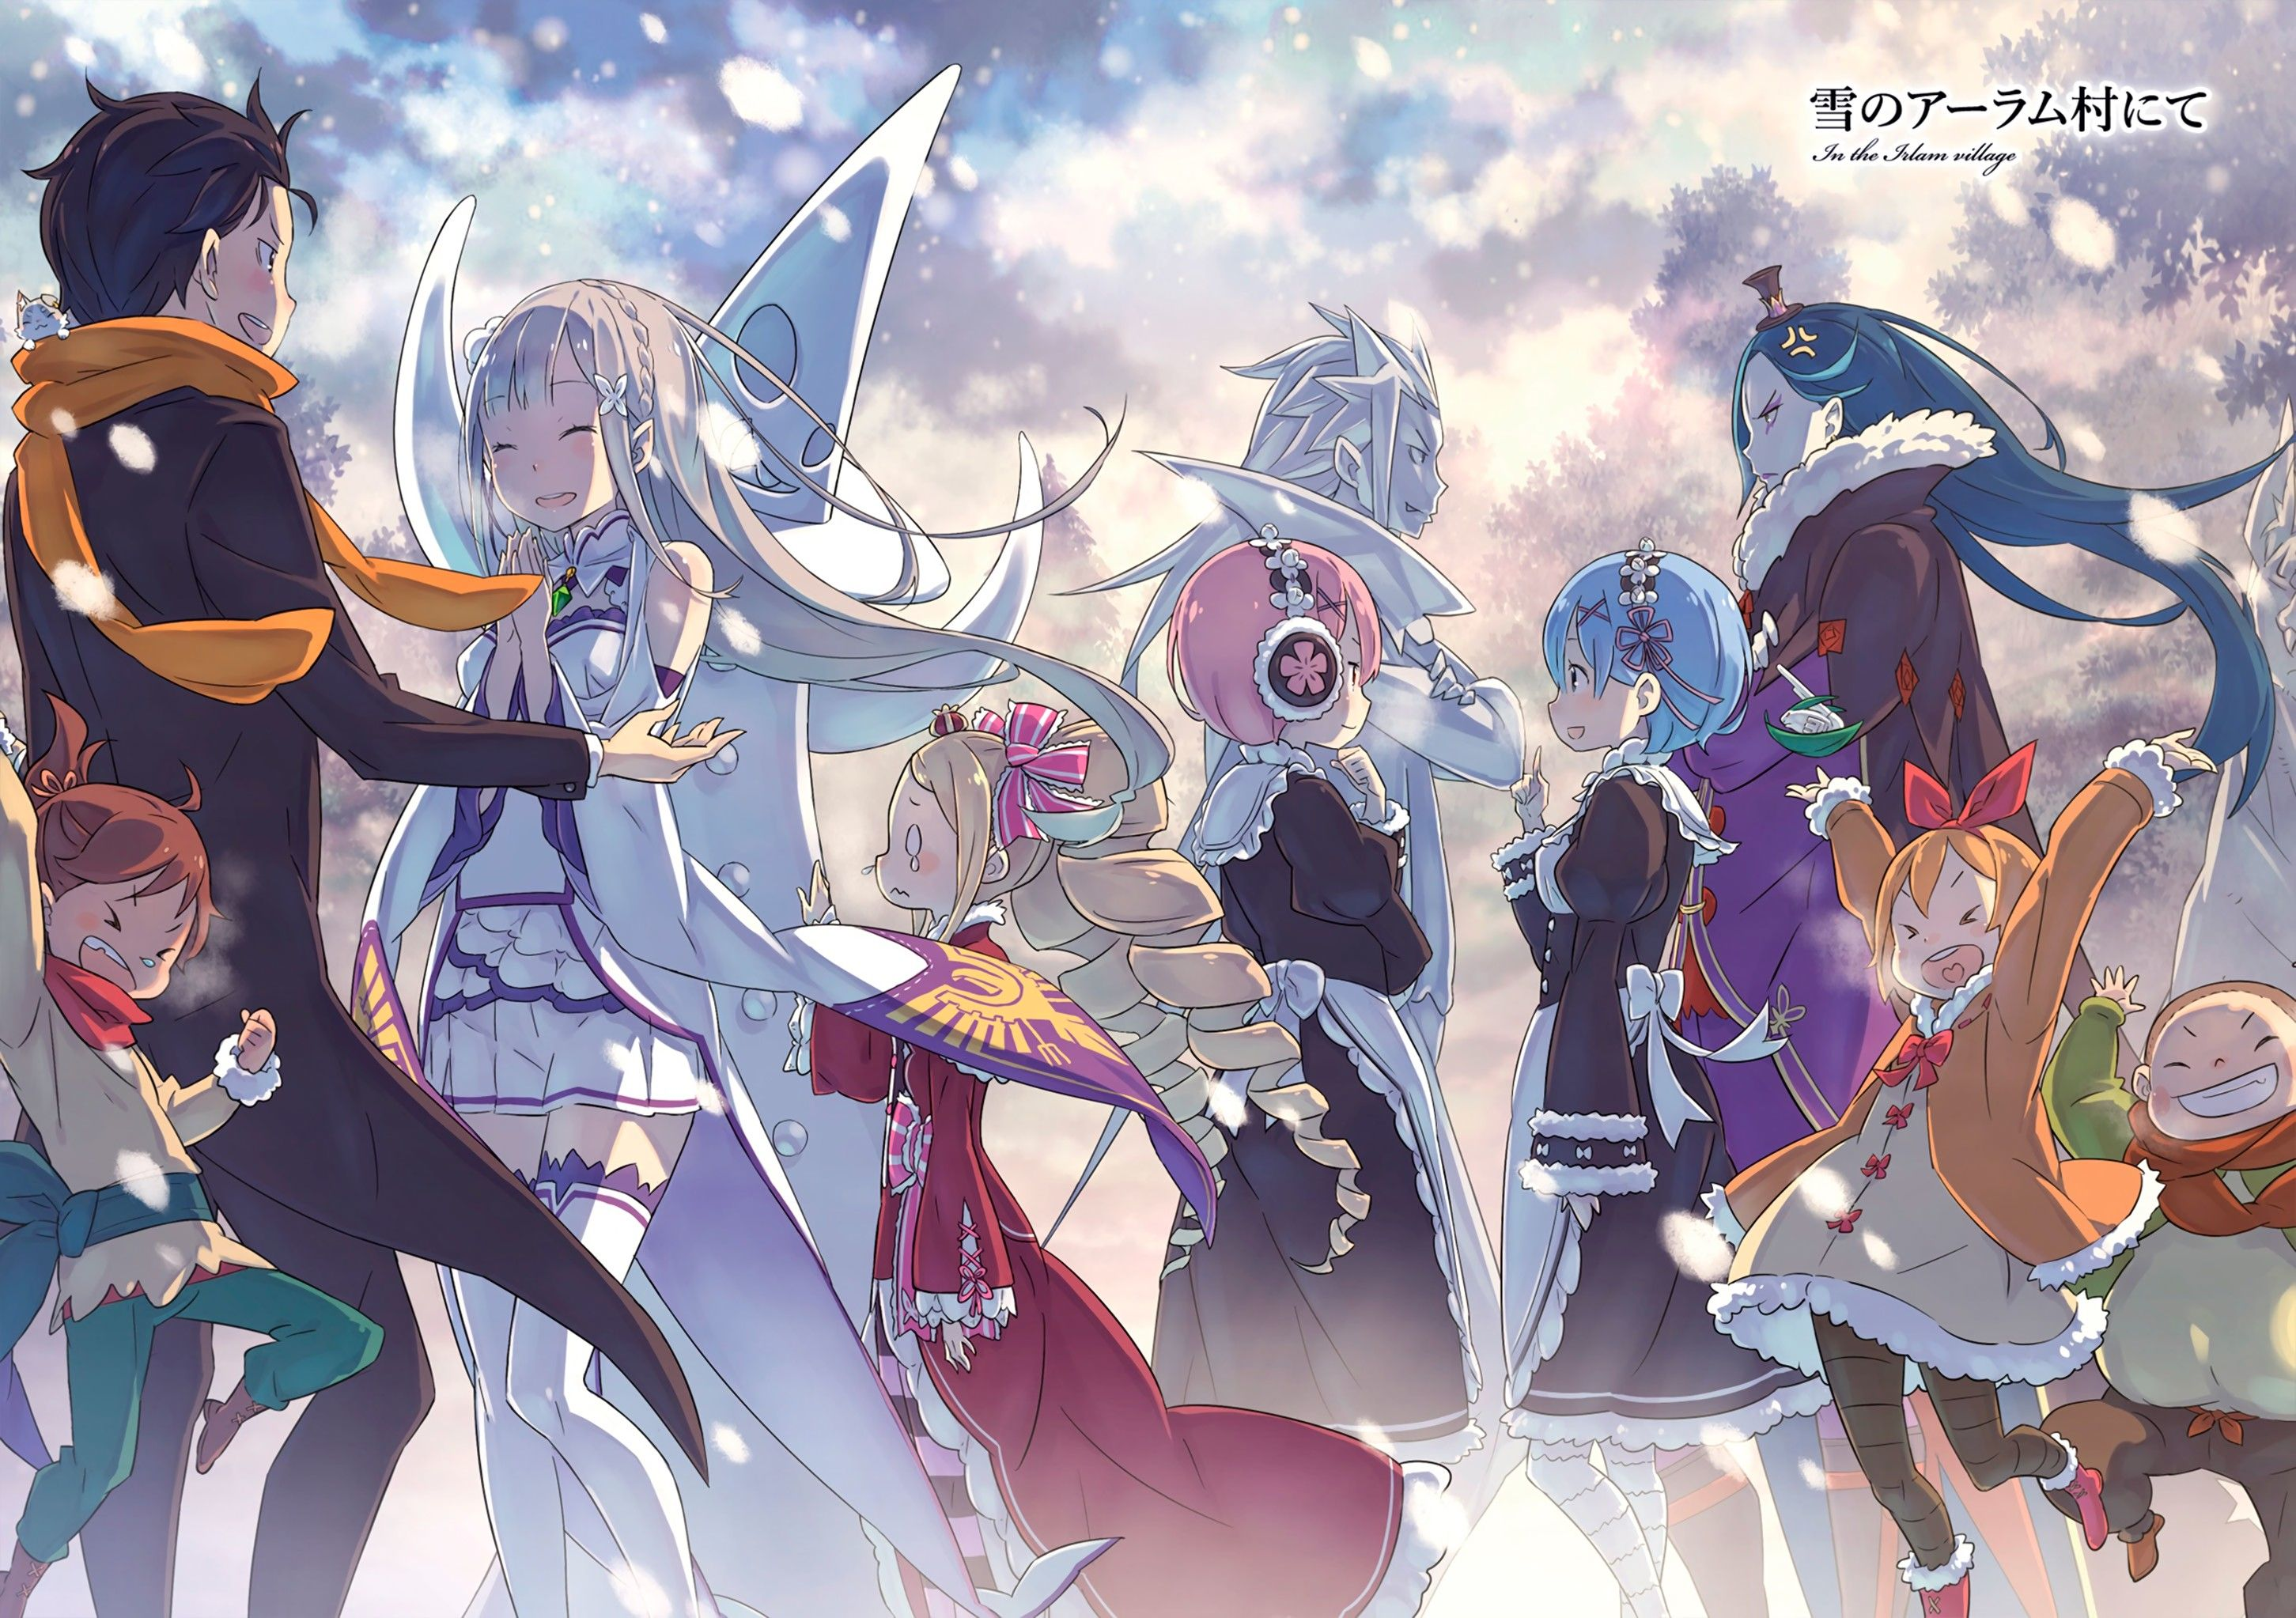 Anime Wallpaper Rem And Ram in 2020 Anime, Anime